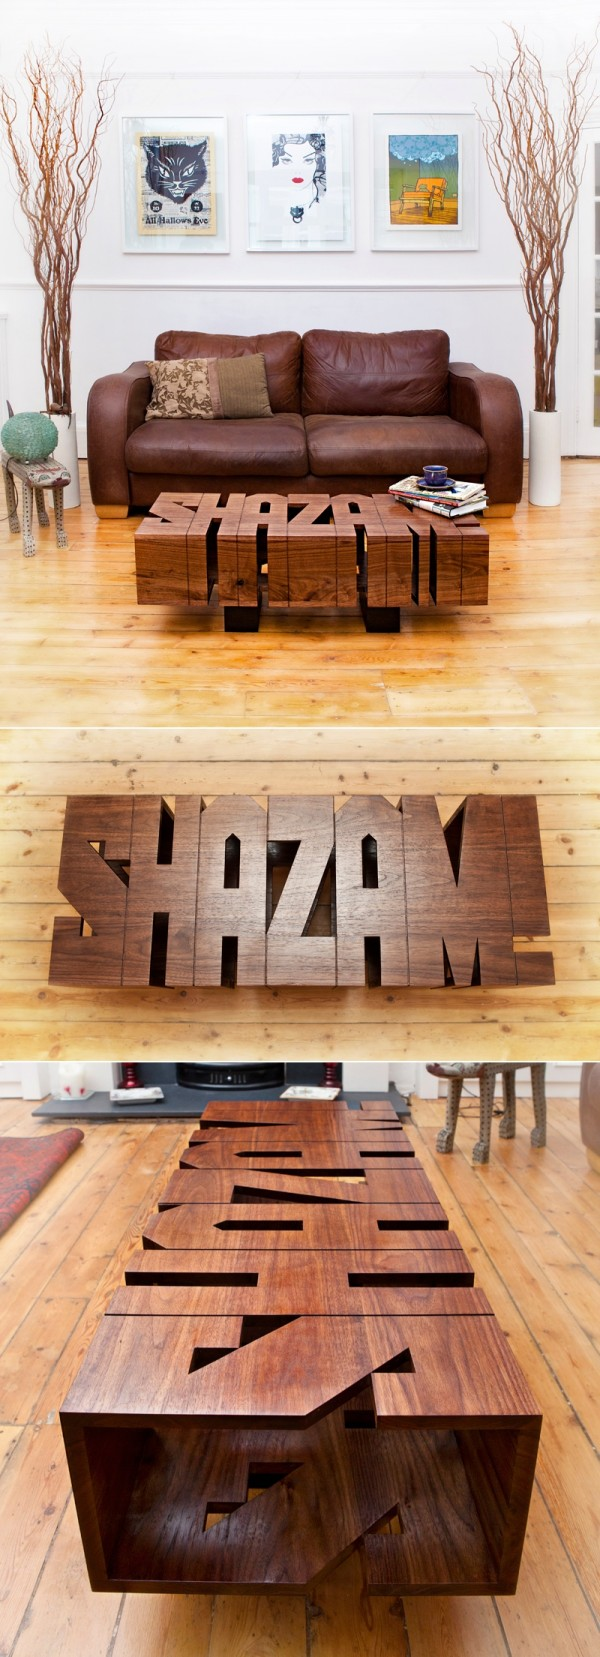 Or create your own custom coffee table message, like this unique option that just says SHAZAM